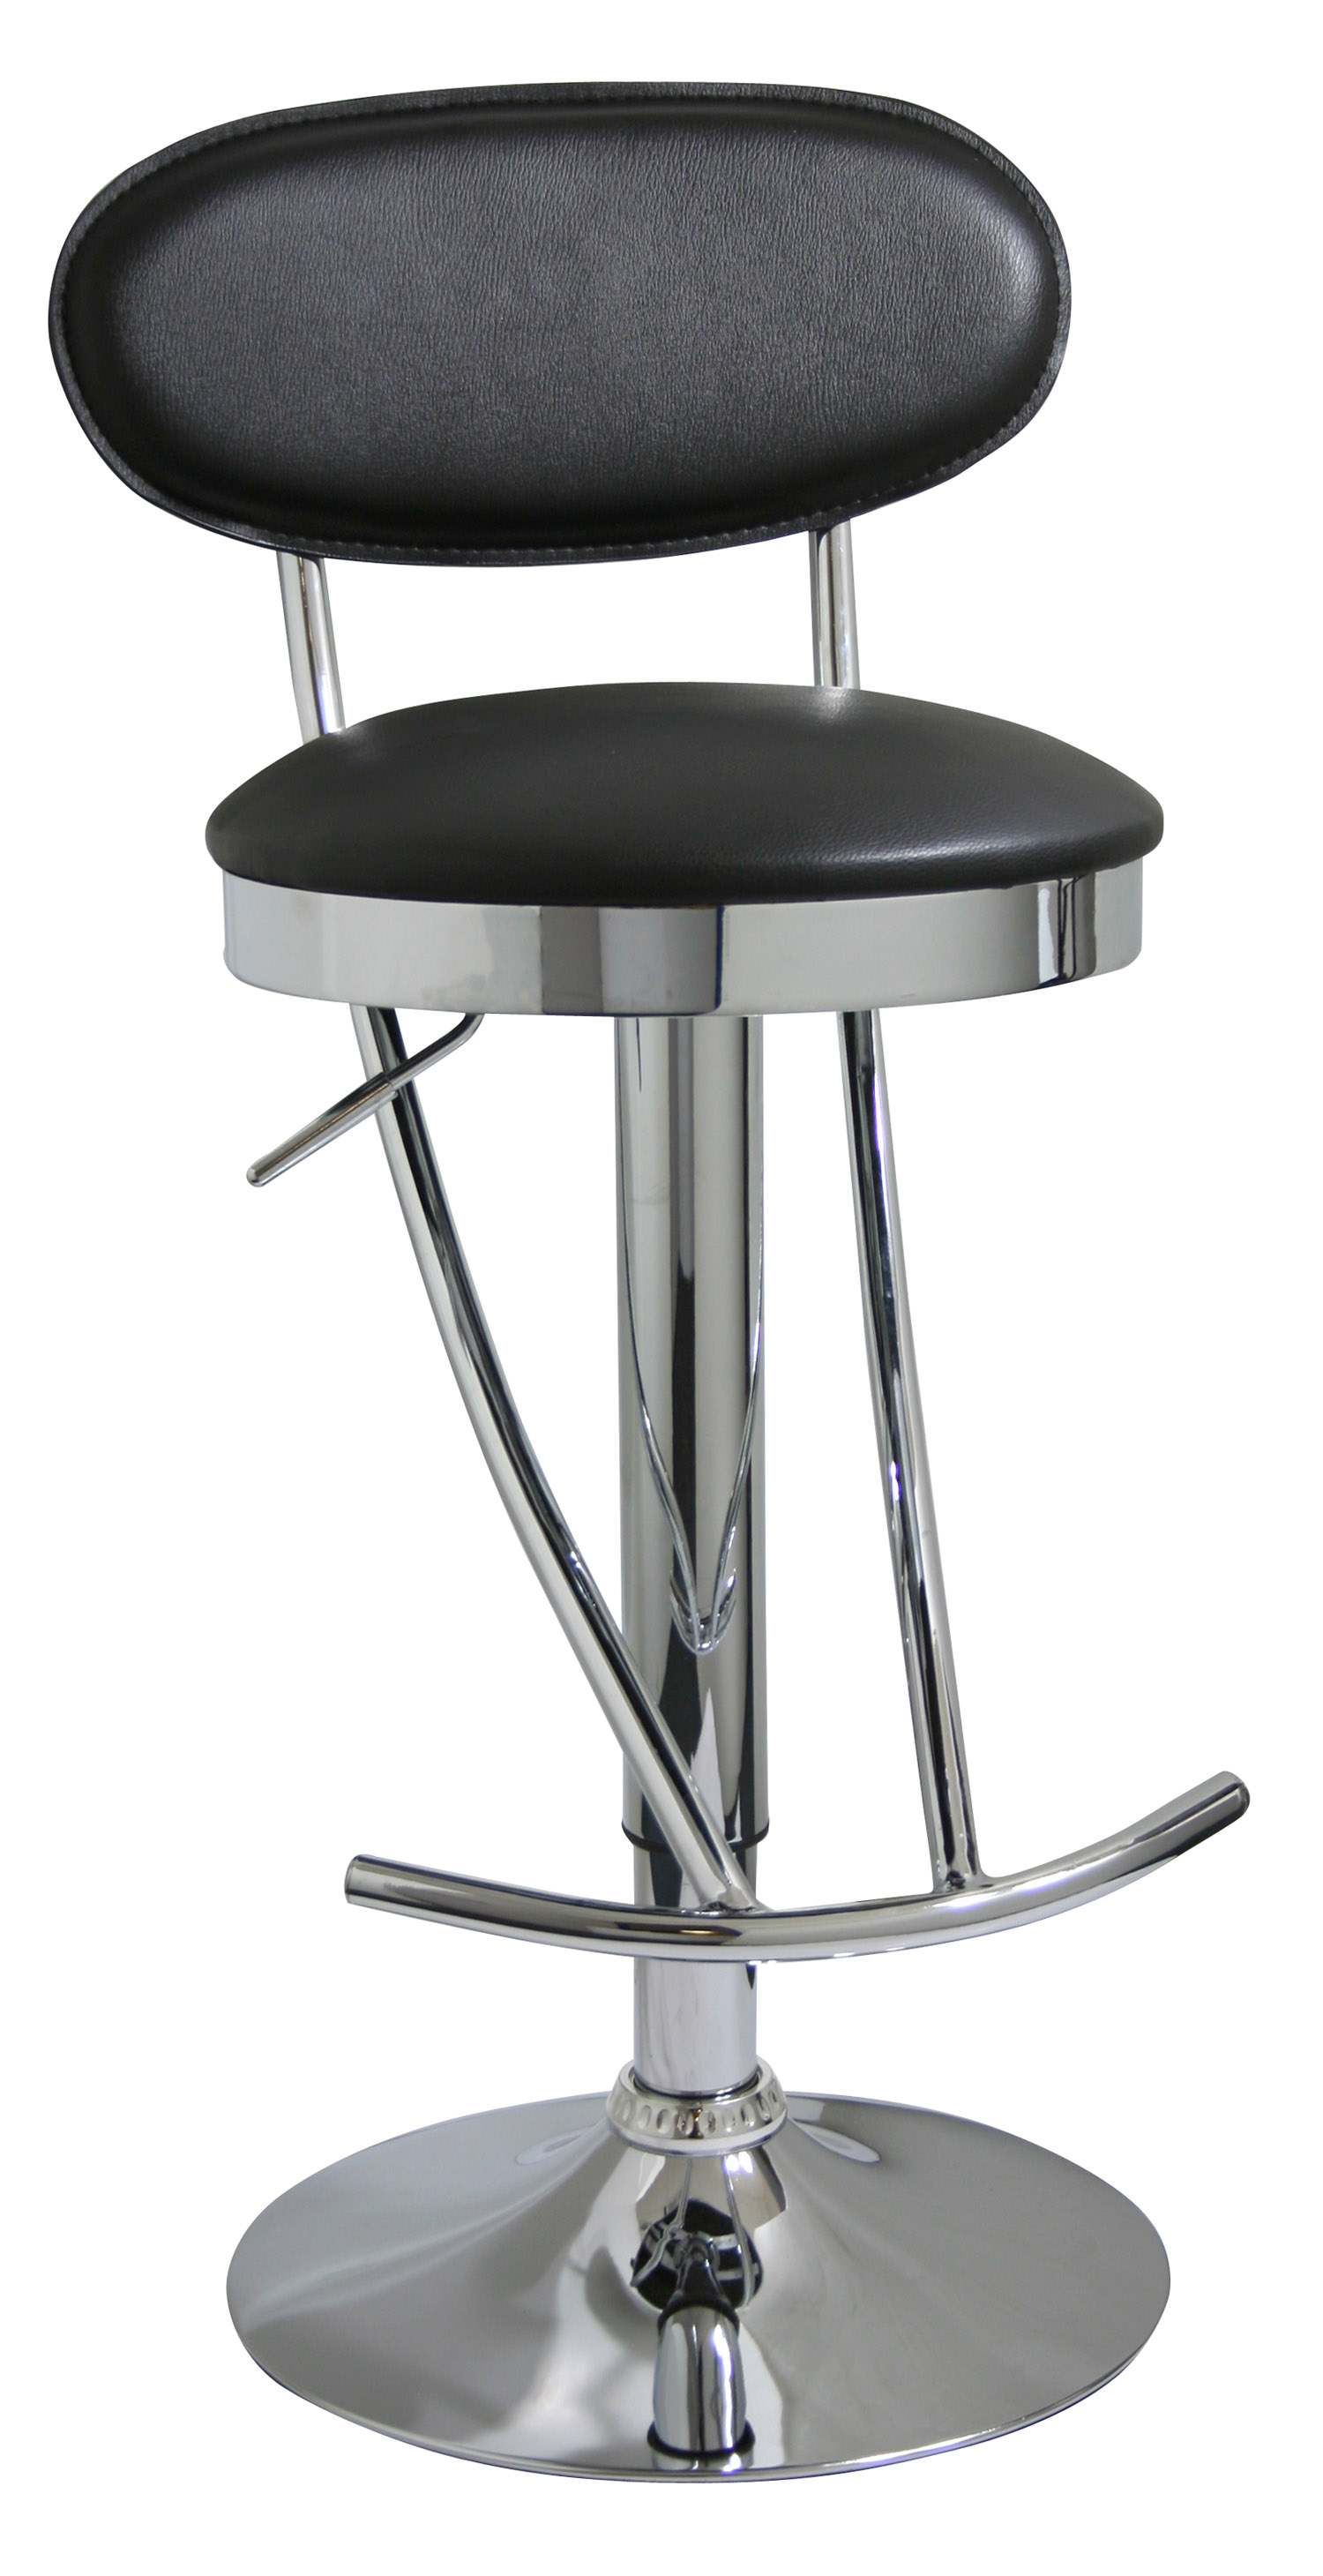 BS2390 AmeriHome Adjustable Height Bar Stool : bs2390 from www.buffalotools.com size 1500 x 2920 jpeg 410kB